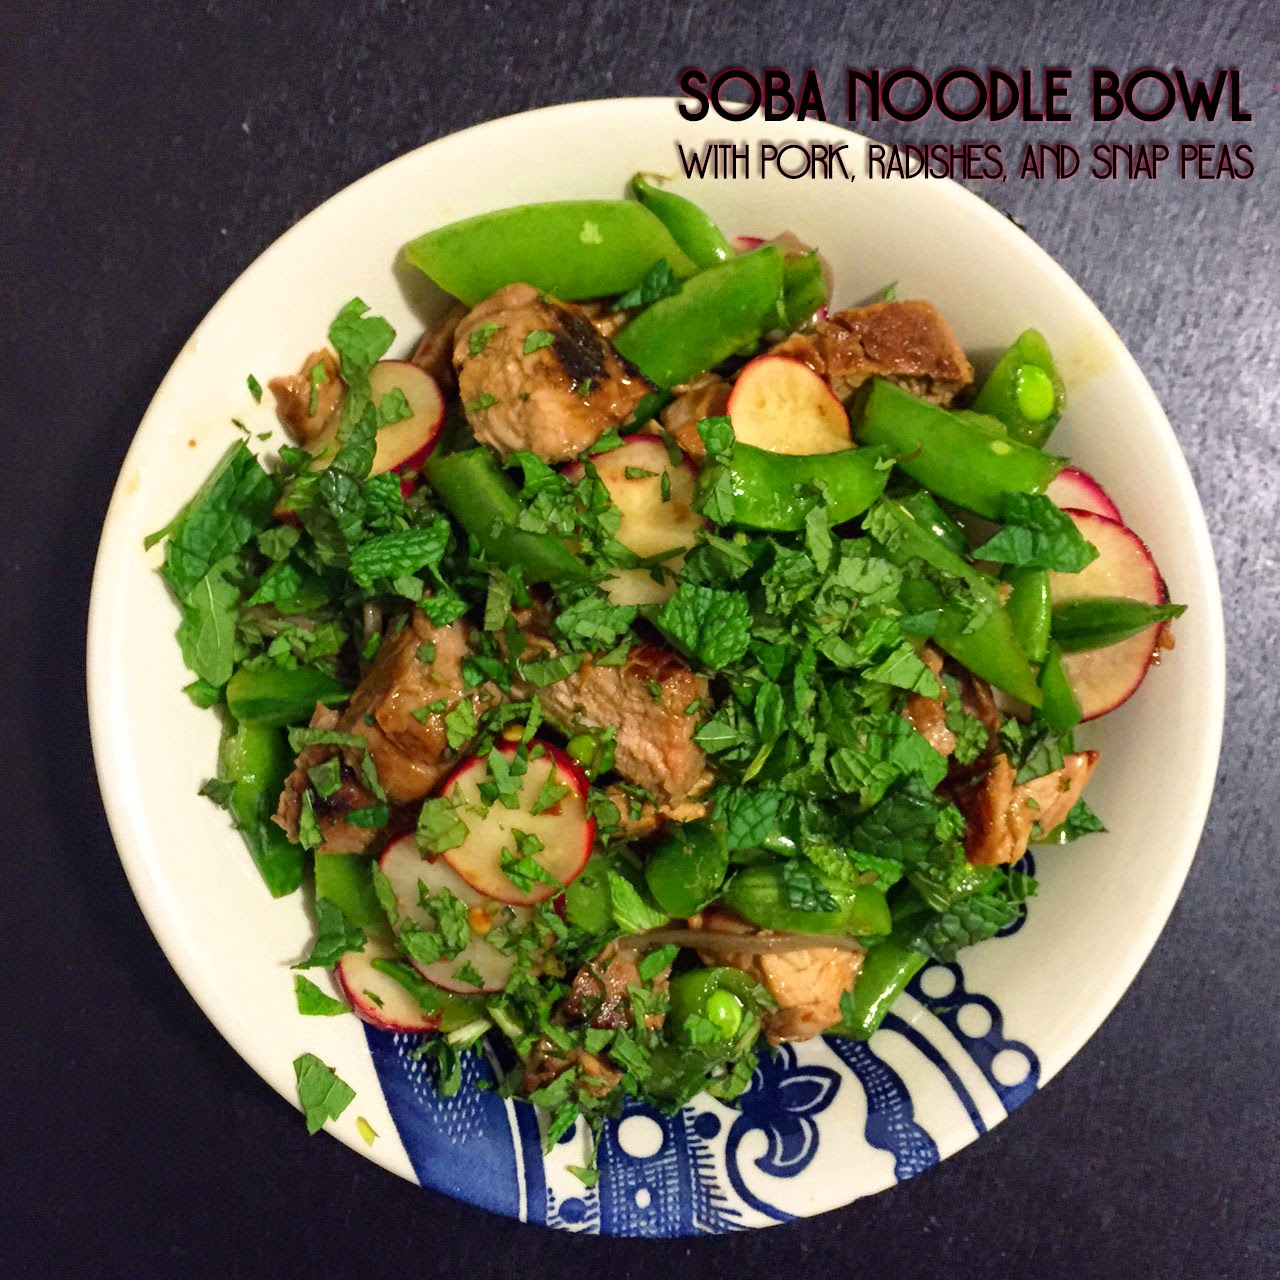 Soba noodle bowl with pork, radishes, and snap peas